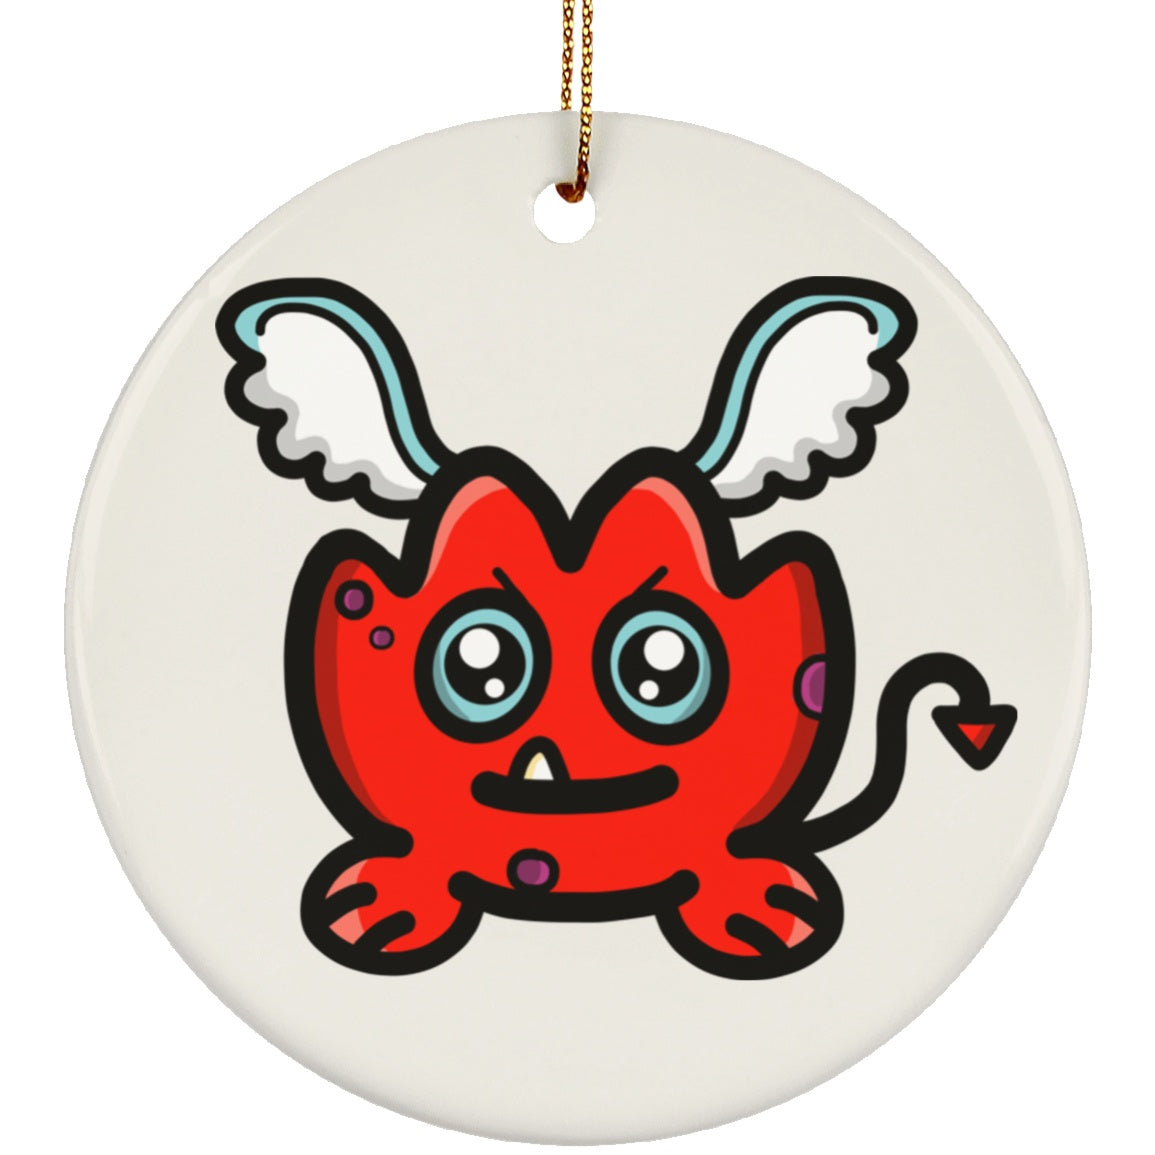 Rara the Cheeky Demon of Anger Circle Ornament - The Unchargeables